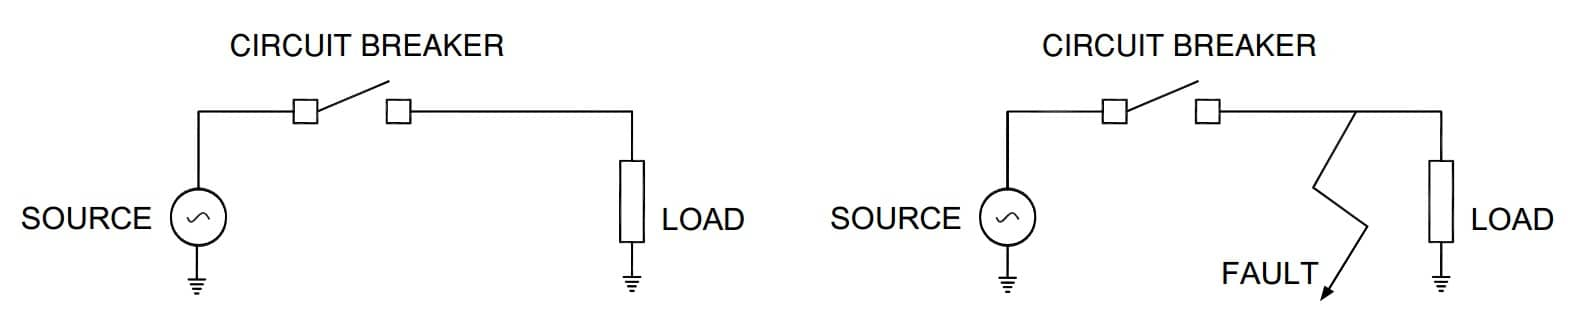 Disconnecting a Load and Interrupting a Fault